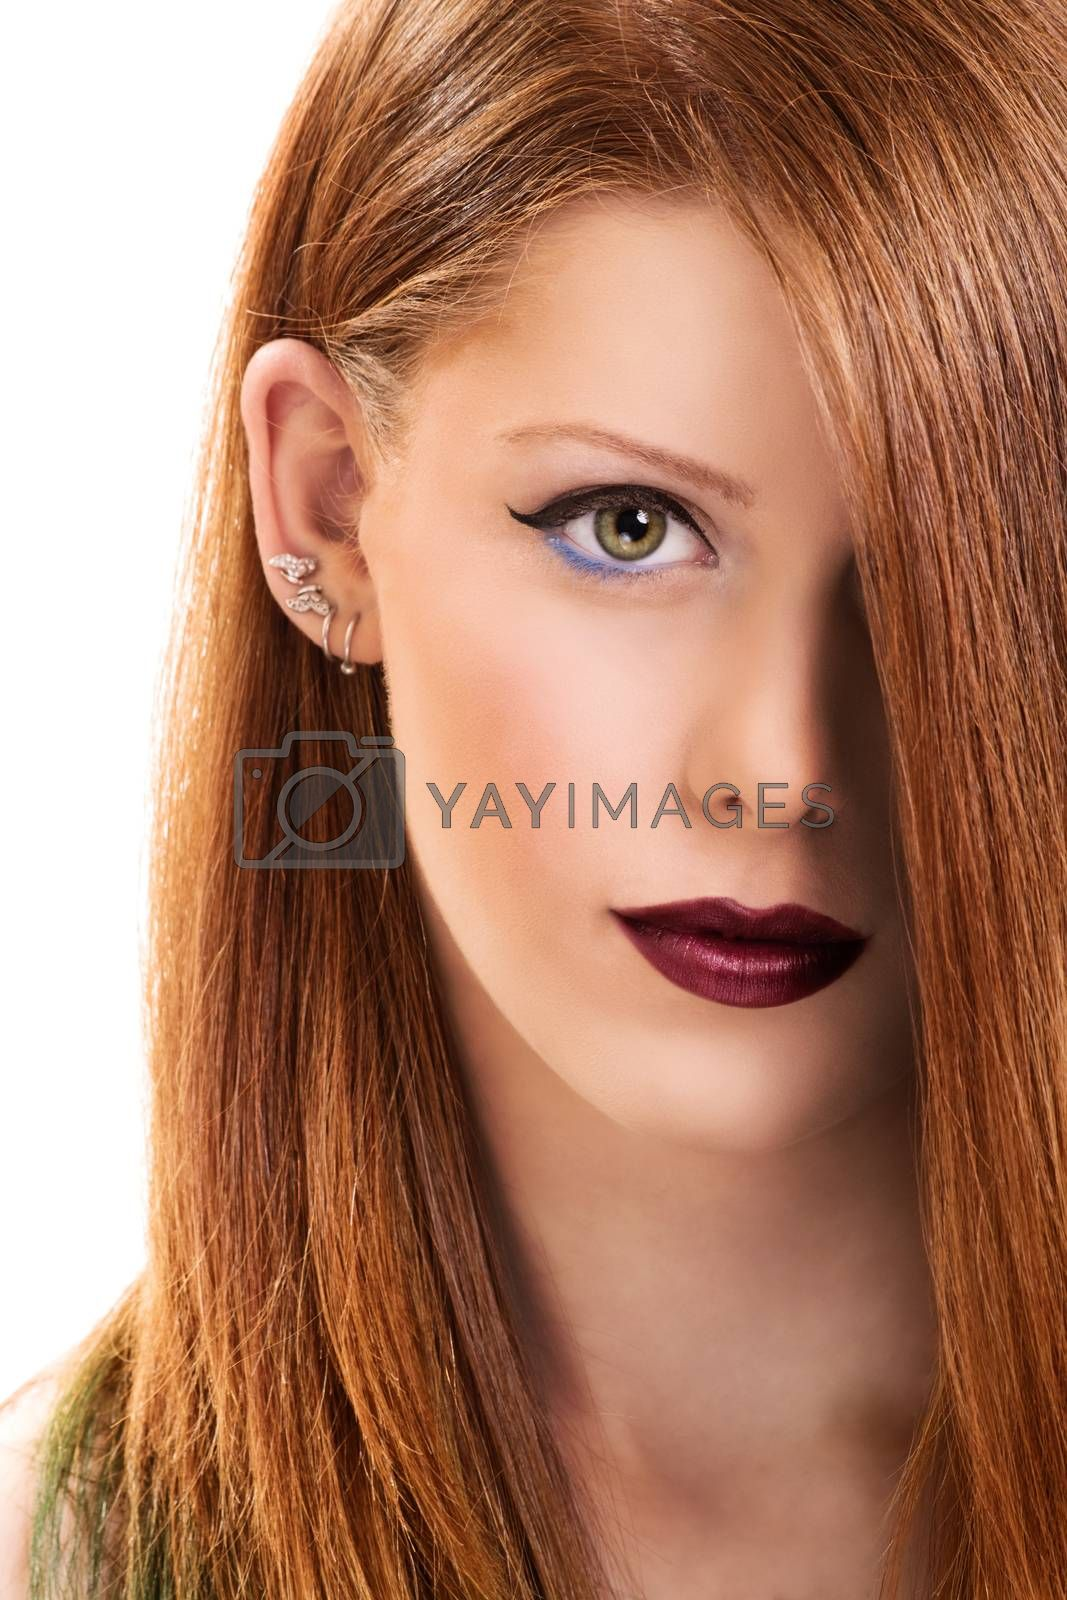 Close up portrait of a beautiful young woman with make up with hair covering her eye, isolated on white background.